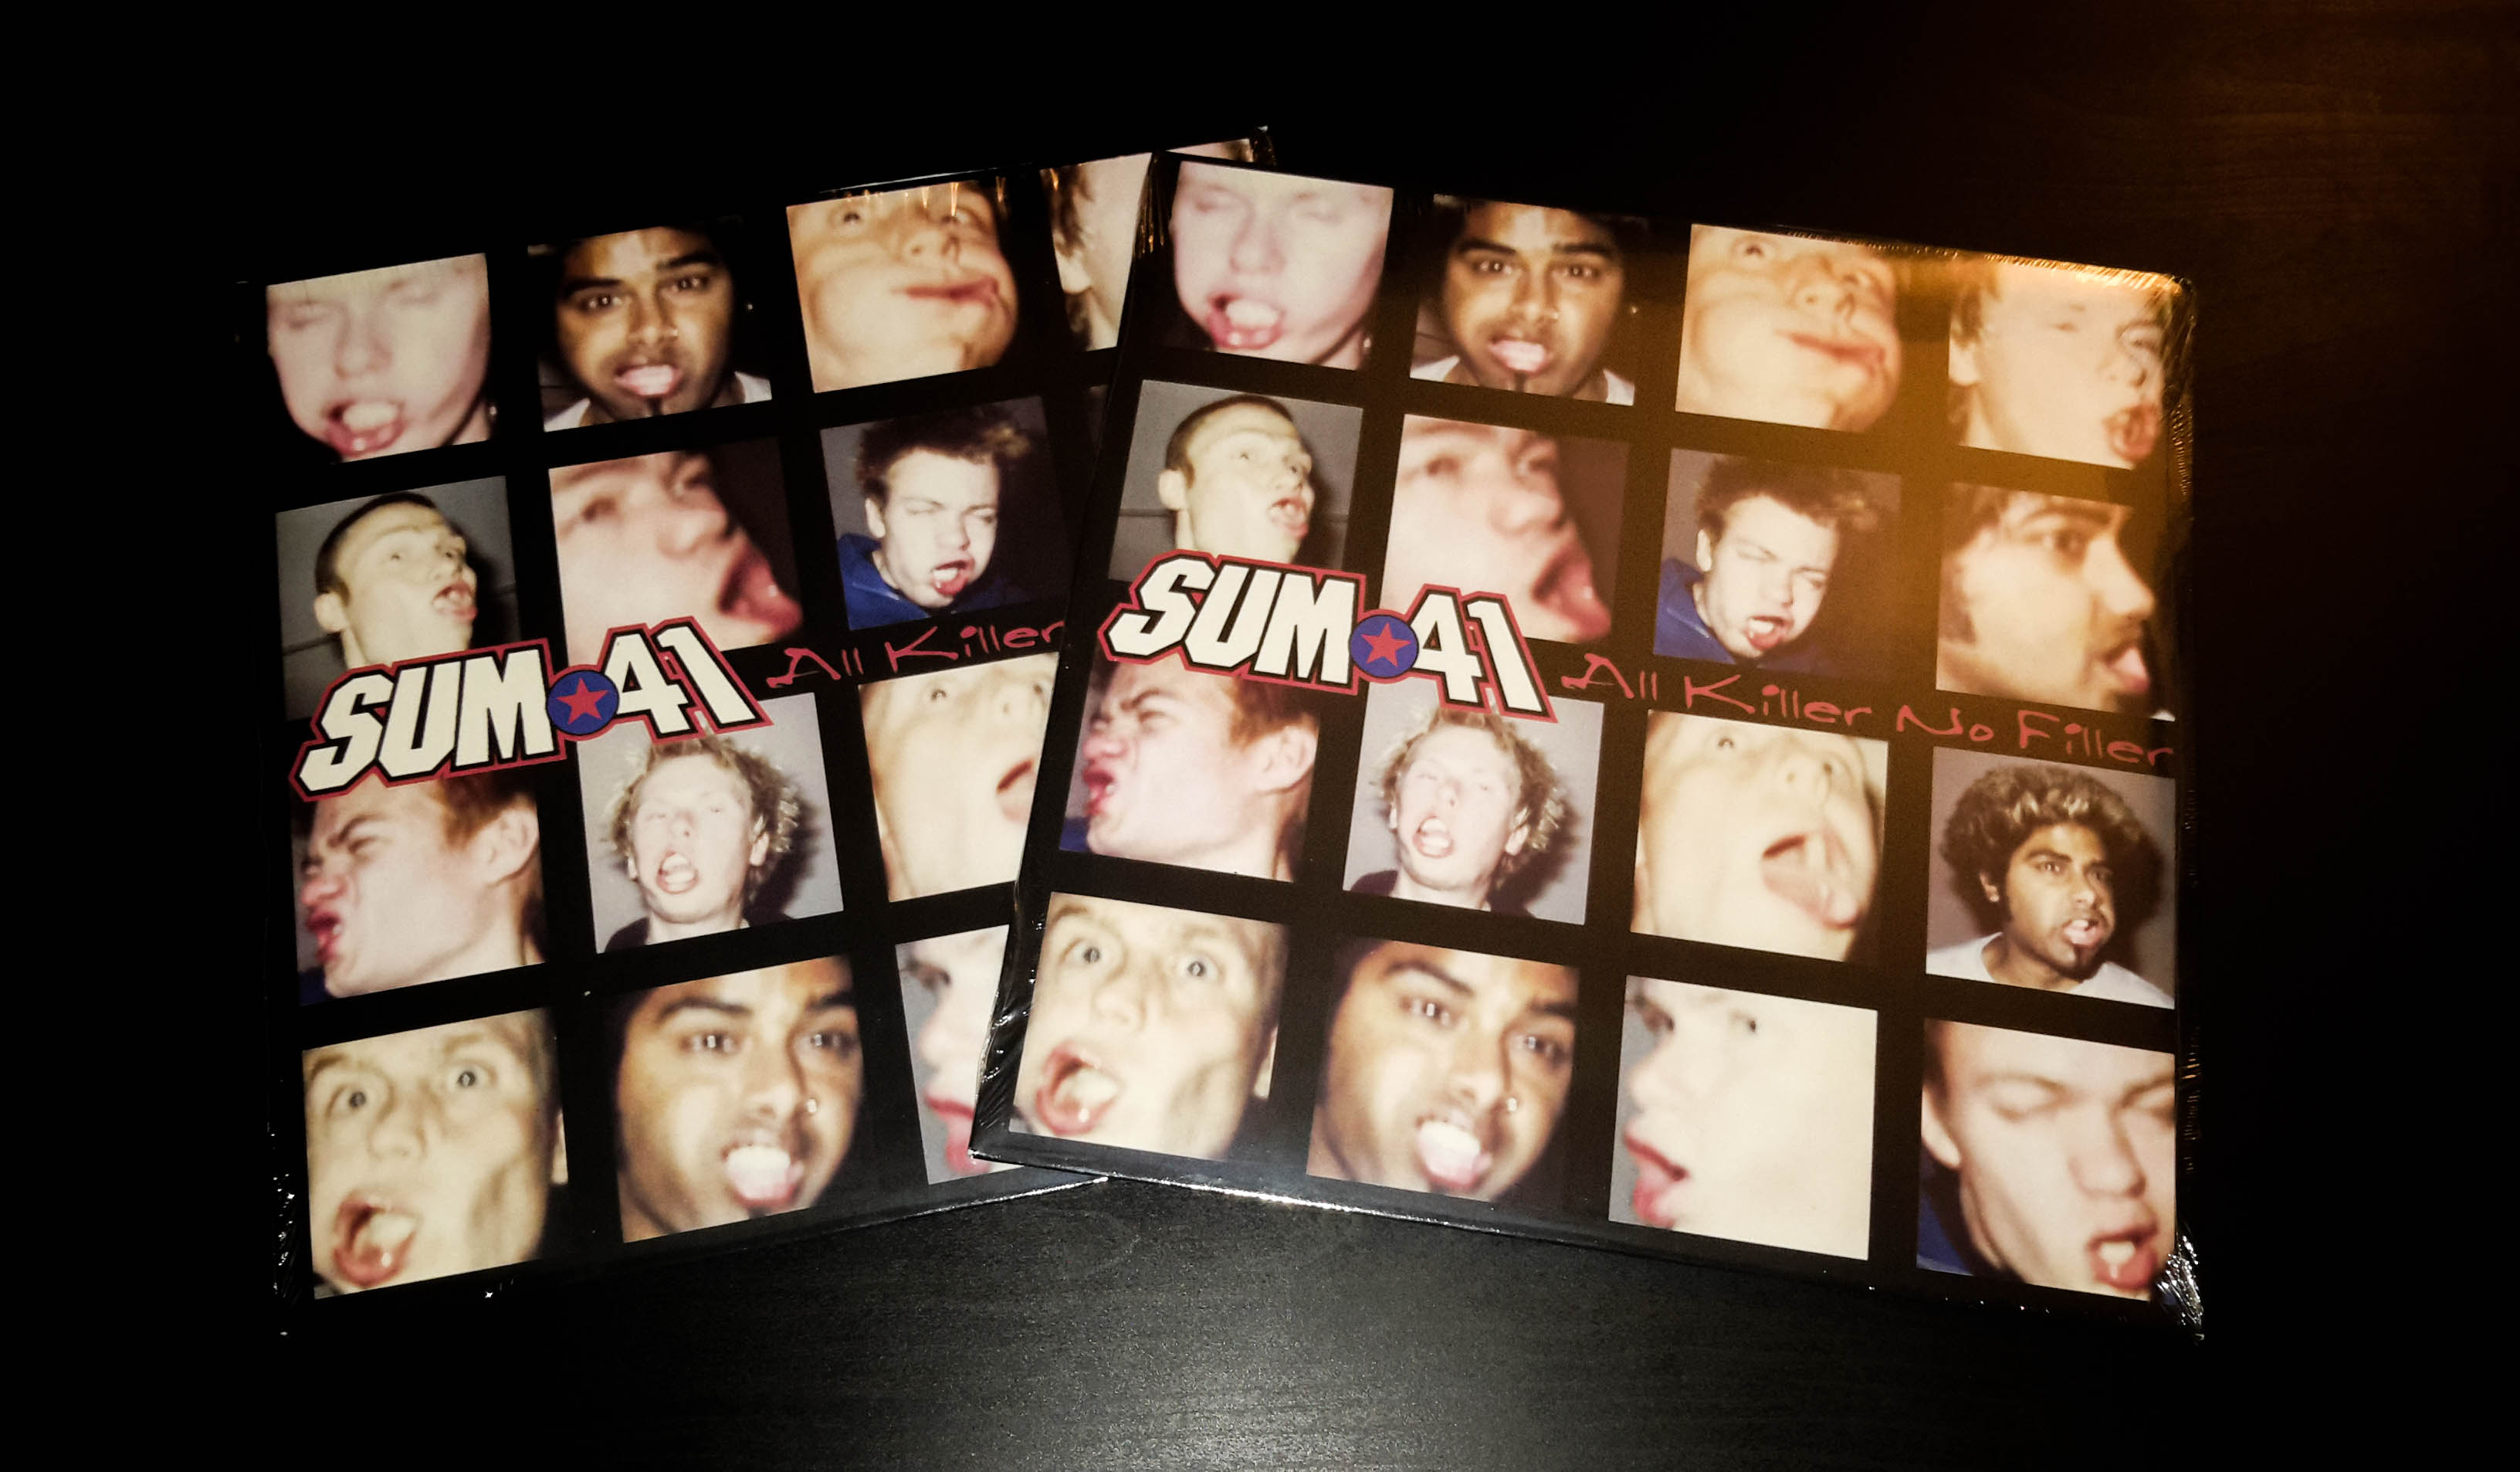 CONTEST: Win a copy of Sum 41's 'All Killer, No Filler' on vinyl!